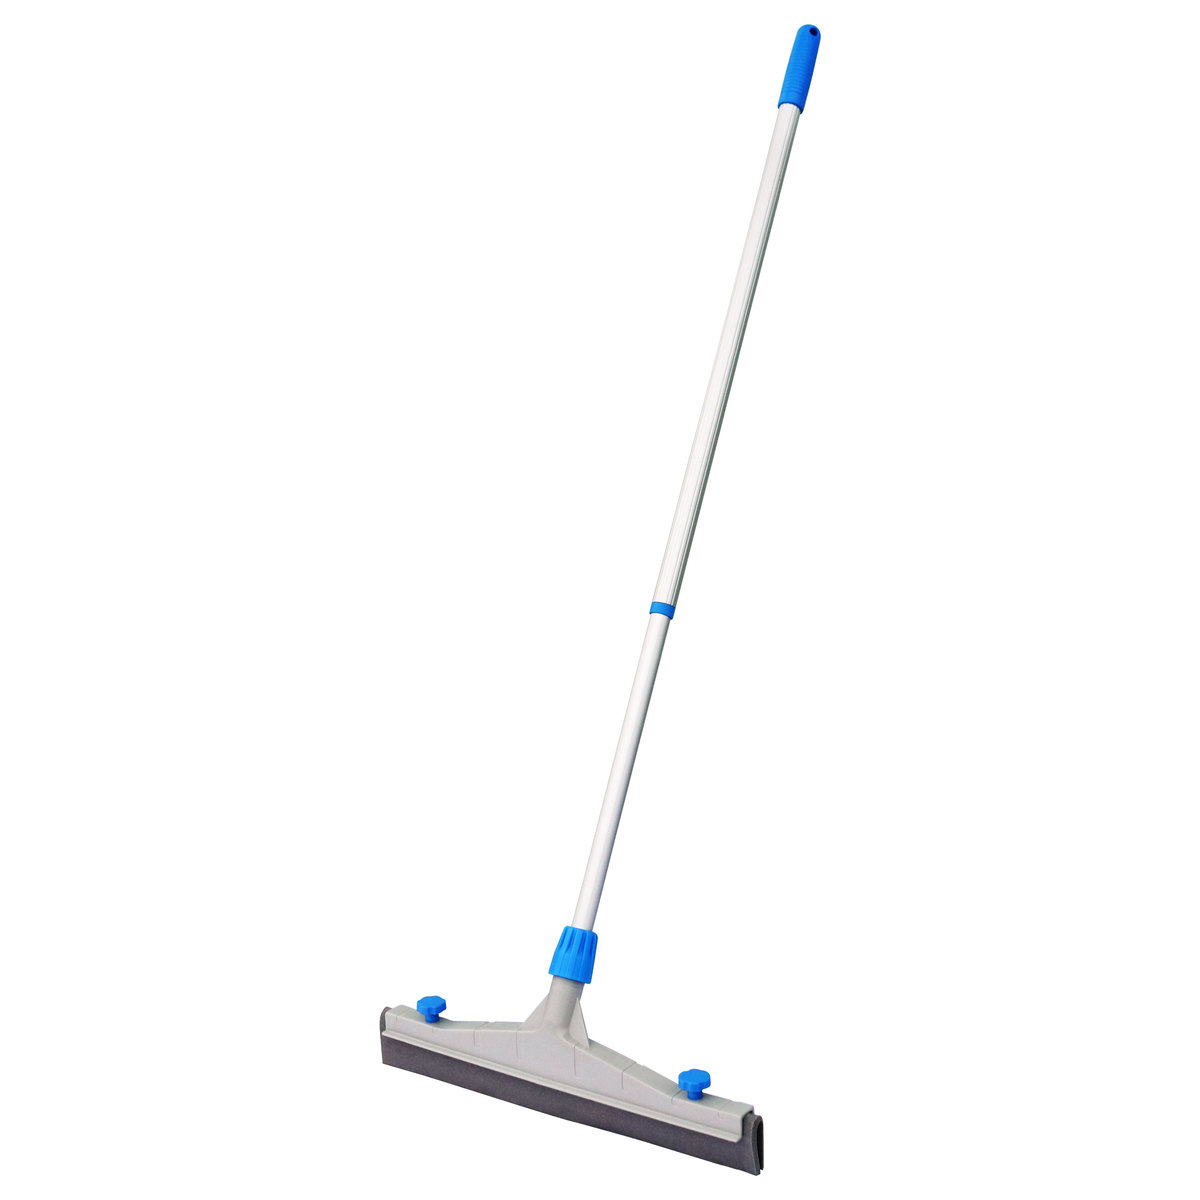 Outdoor Floor Cleaning Squeegee, 45cm frame, Blue